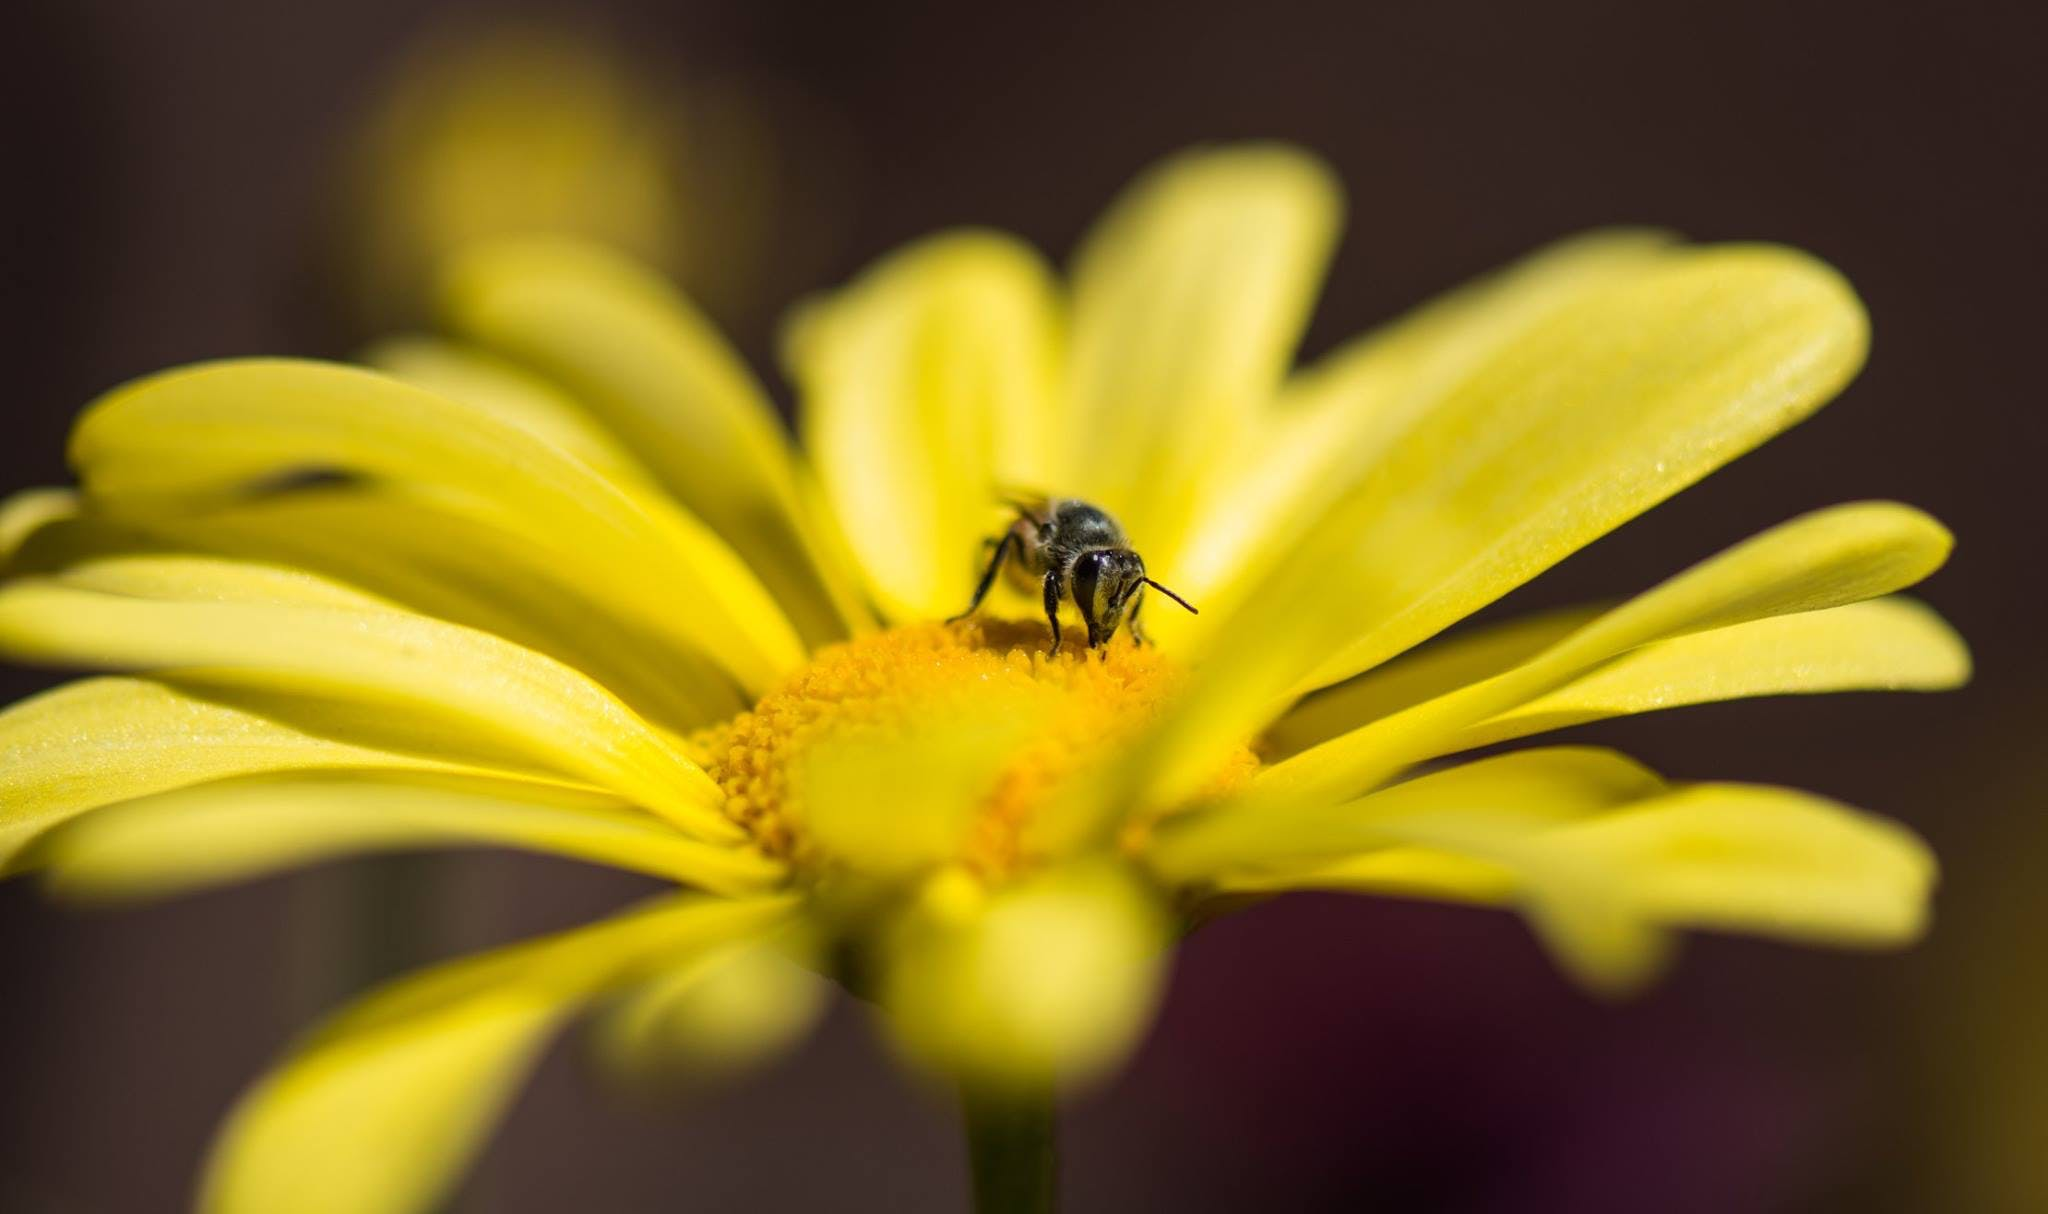 Honeybee Perched on Yellow Petaled Flower in Closeup Photo